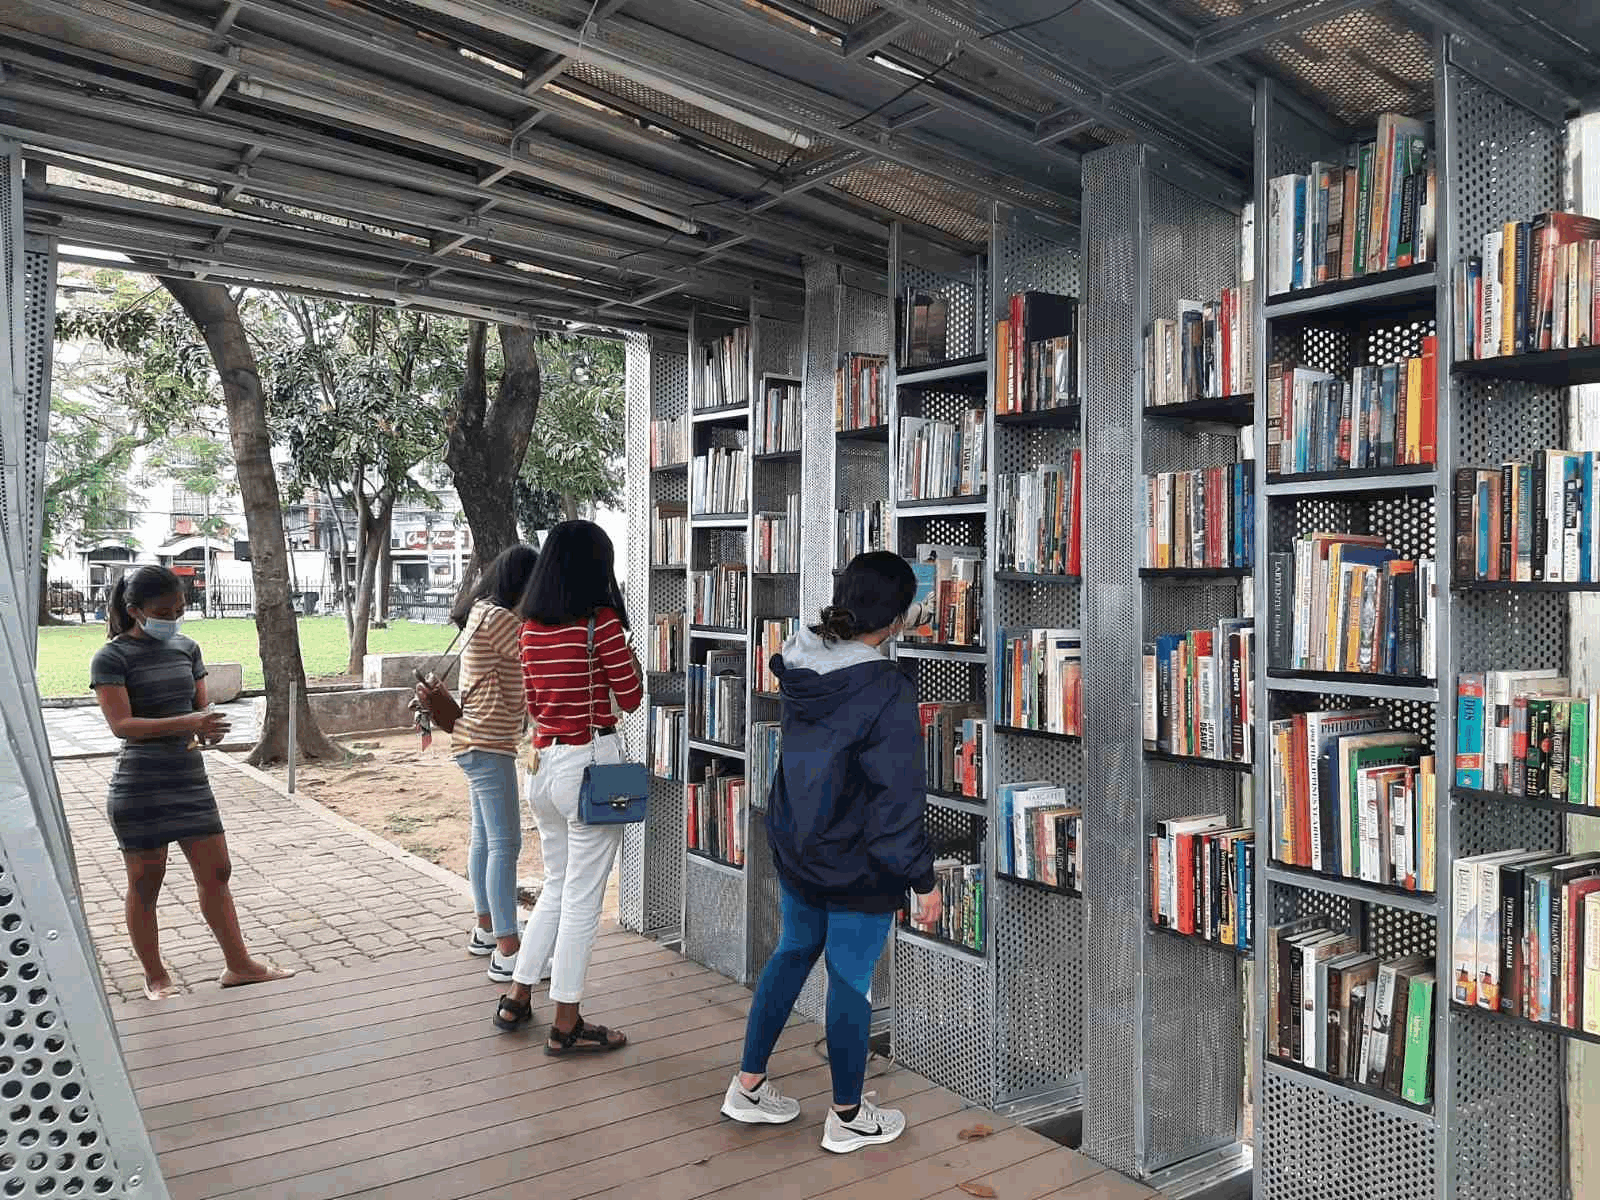 Intramuros reopens - The Book Stop Project